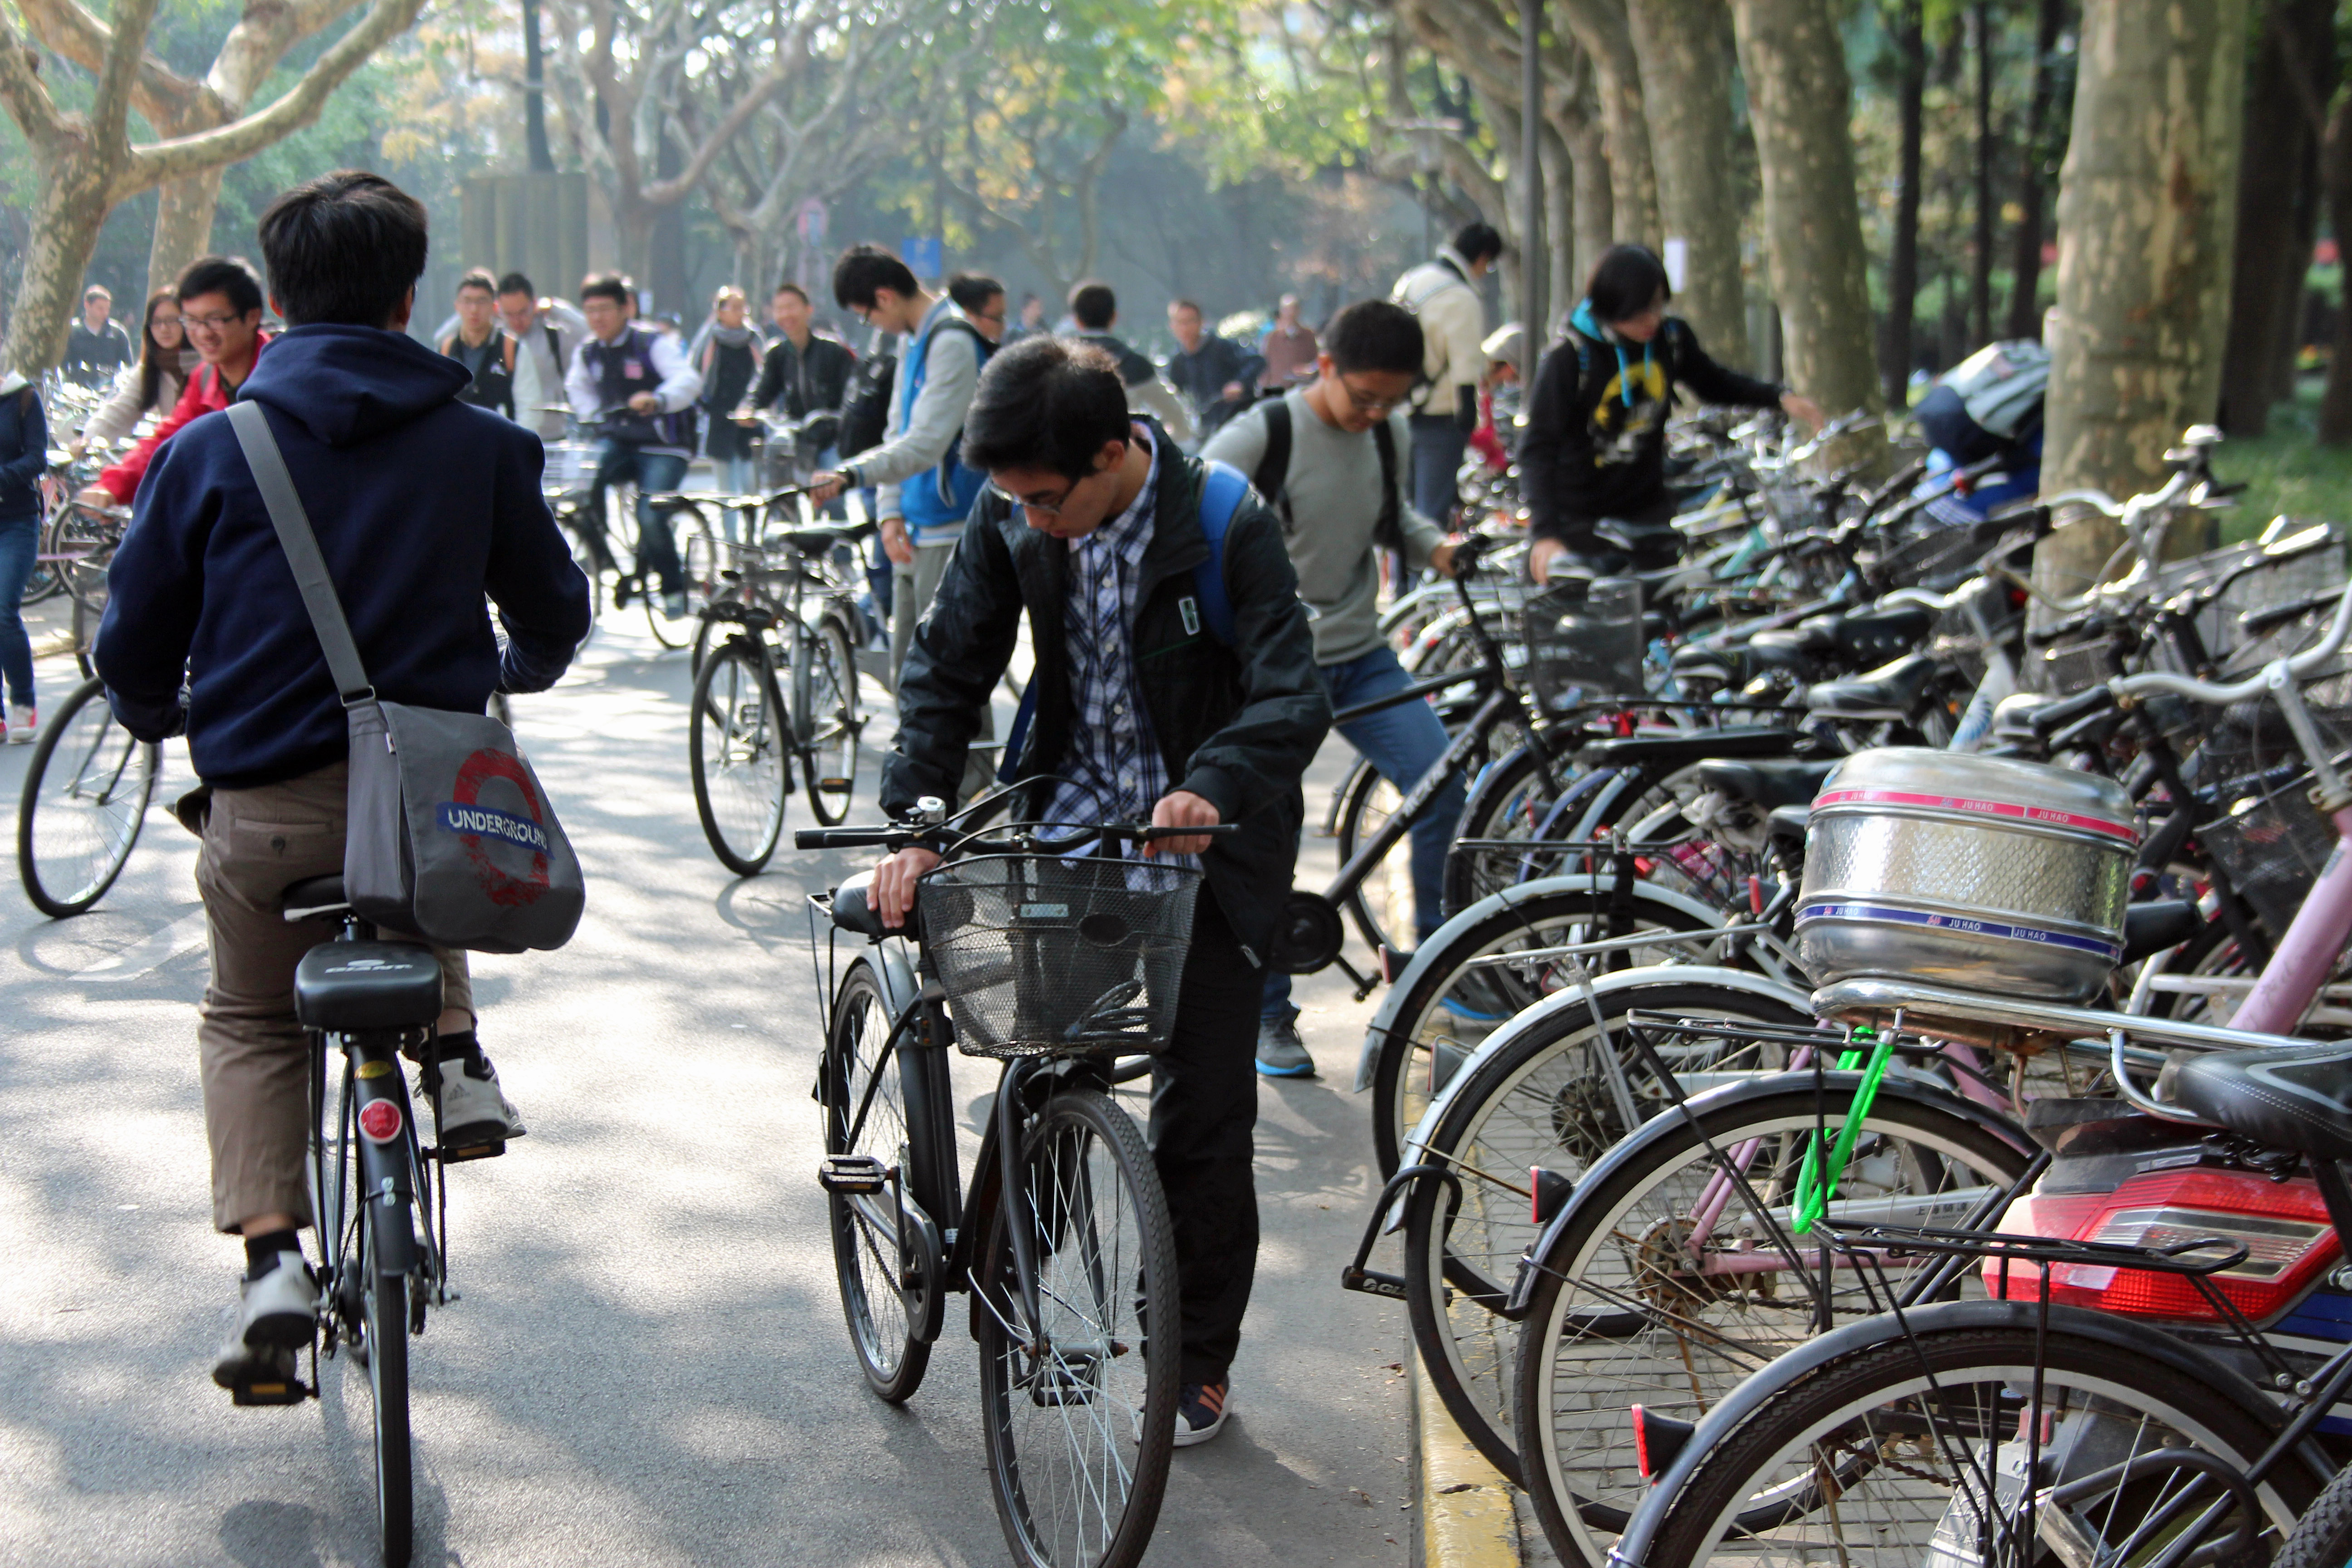 Bicycles cover the grounds at Fudan University in Shanghai. Photo by Larisa Epatko/PBS NewsHour